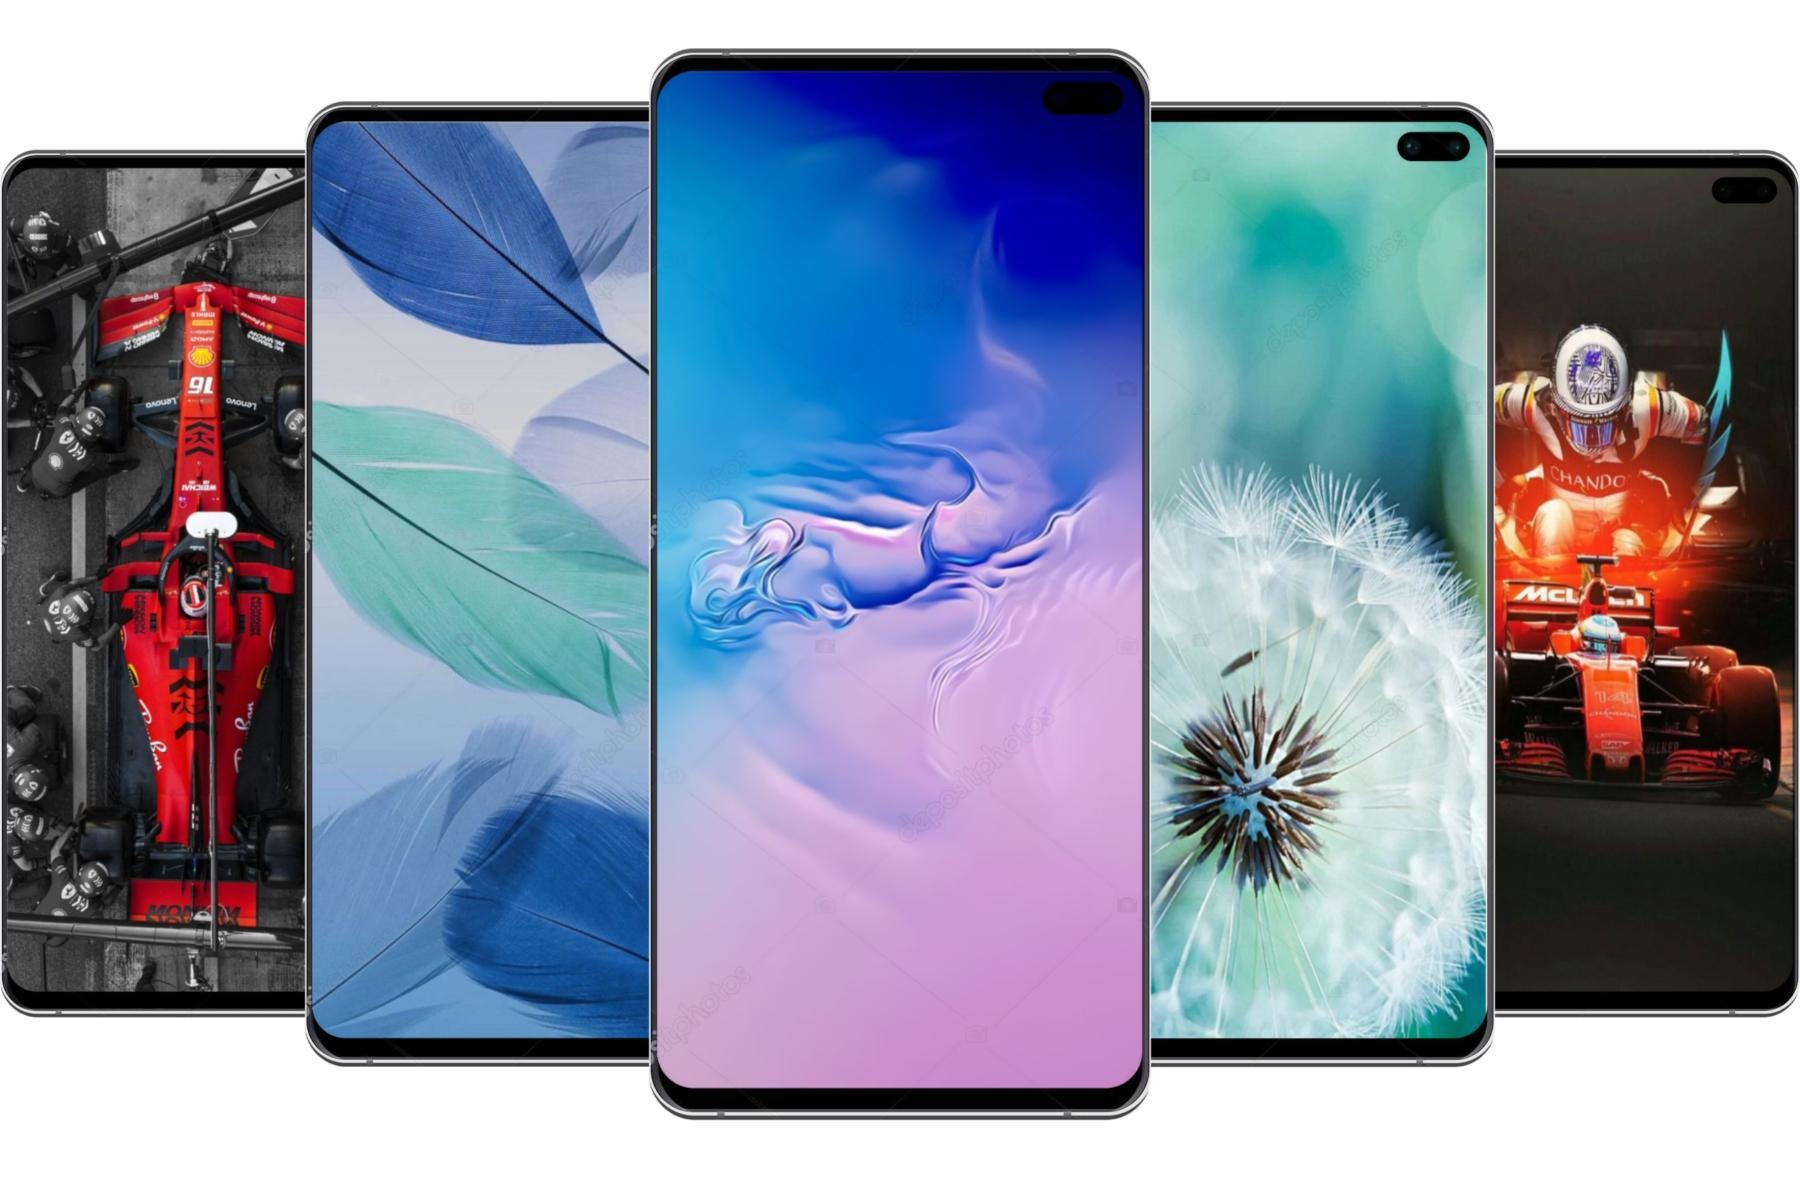 Wallpaper For Galaxy S20 S20 Plus Galaxy A10 A80 For Android Apk Download